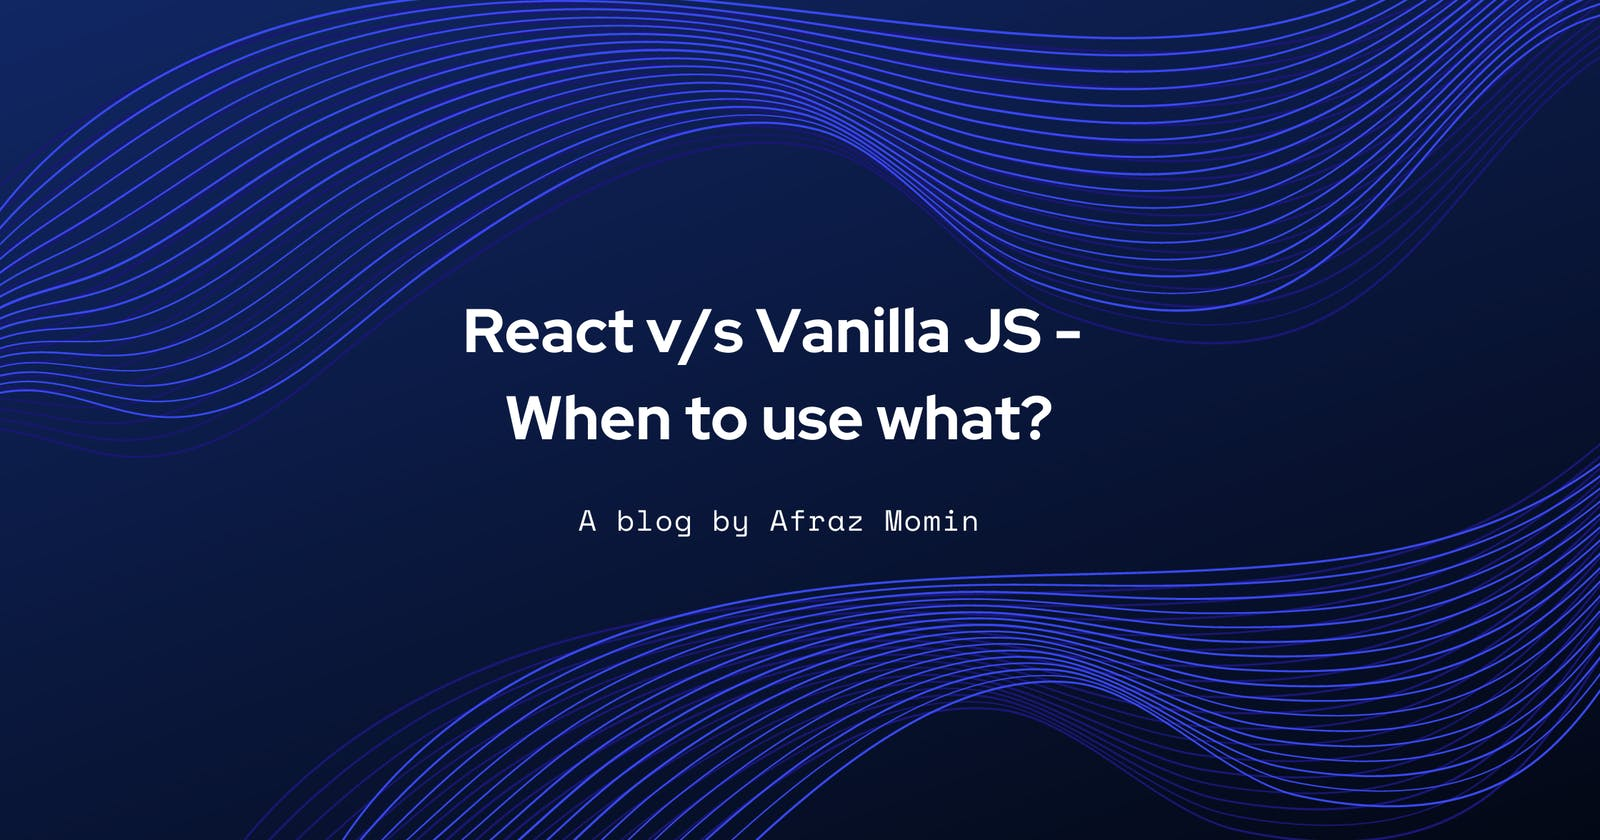 React vs Vanilla JS - When to use what?